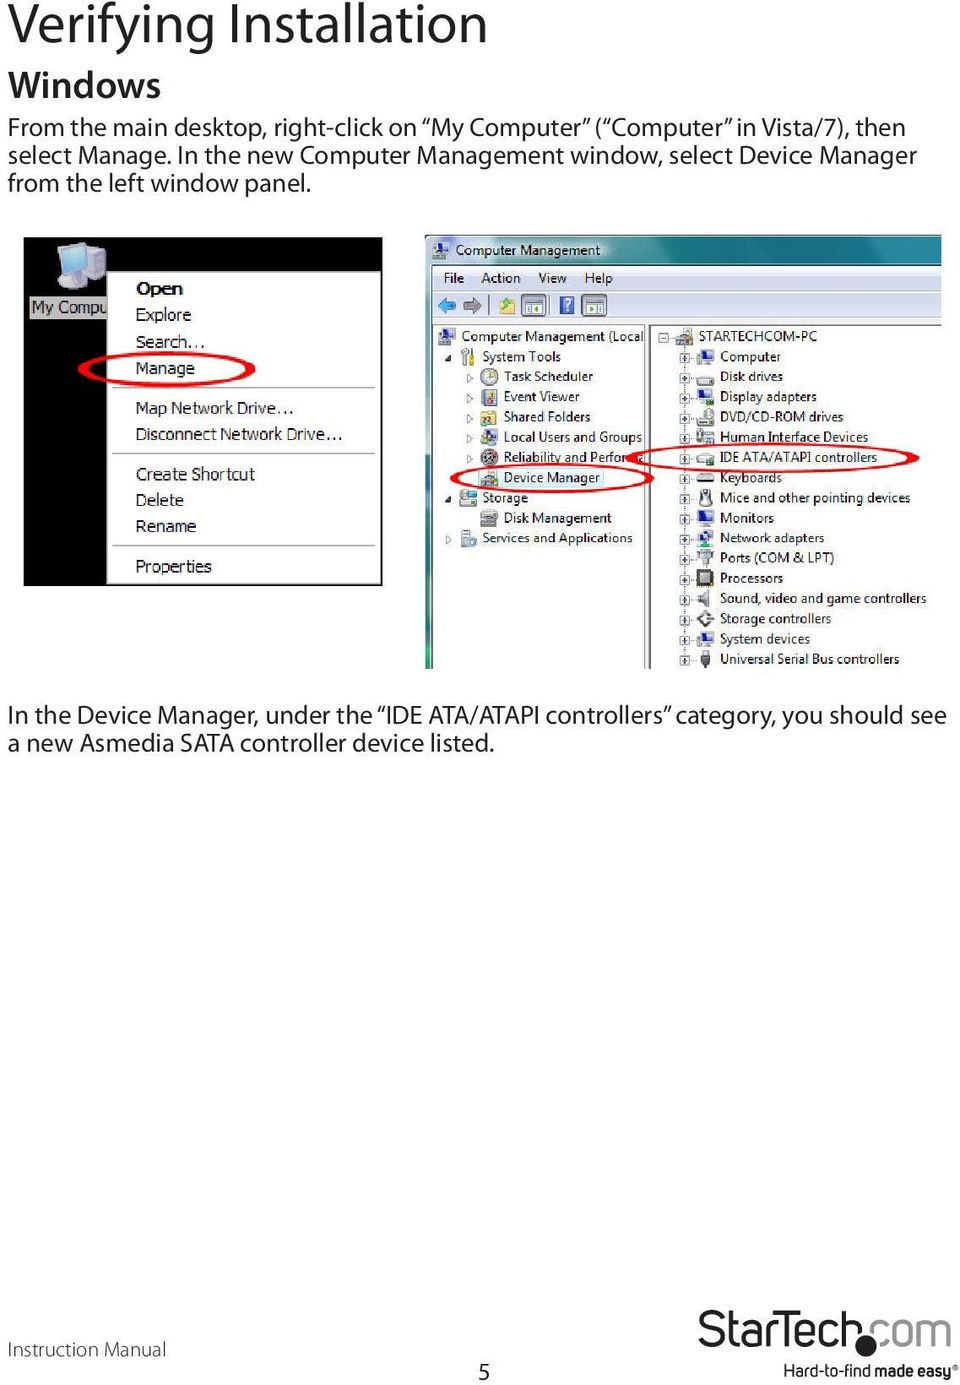 In the new Computer Management window, select Device Manager from the left window